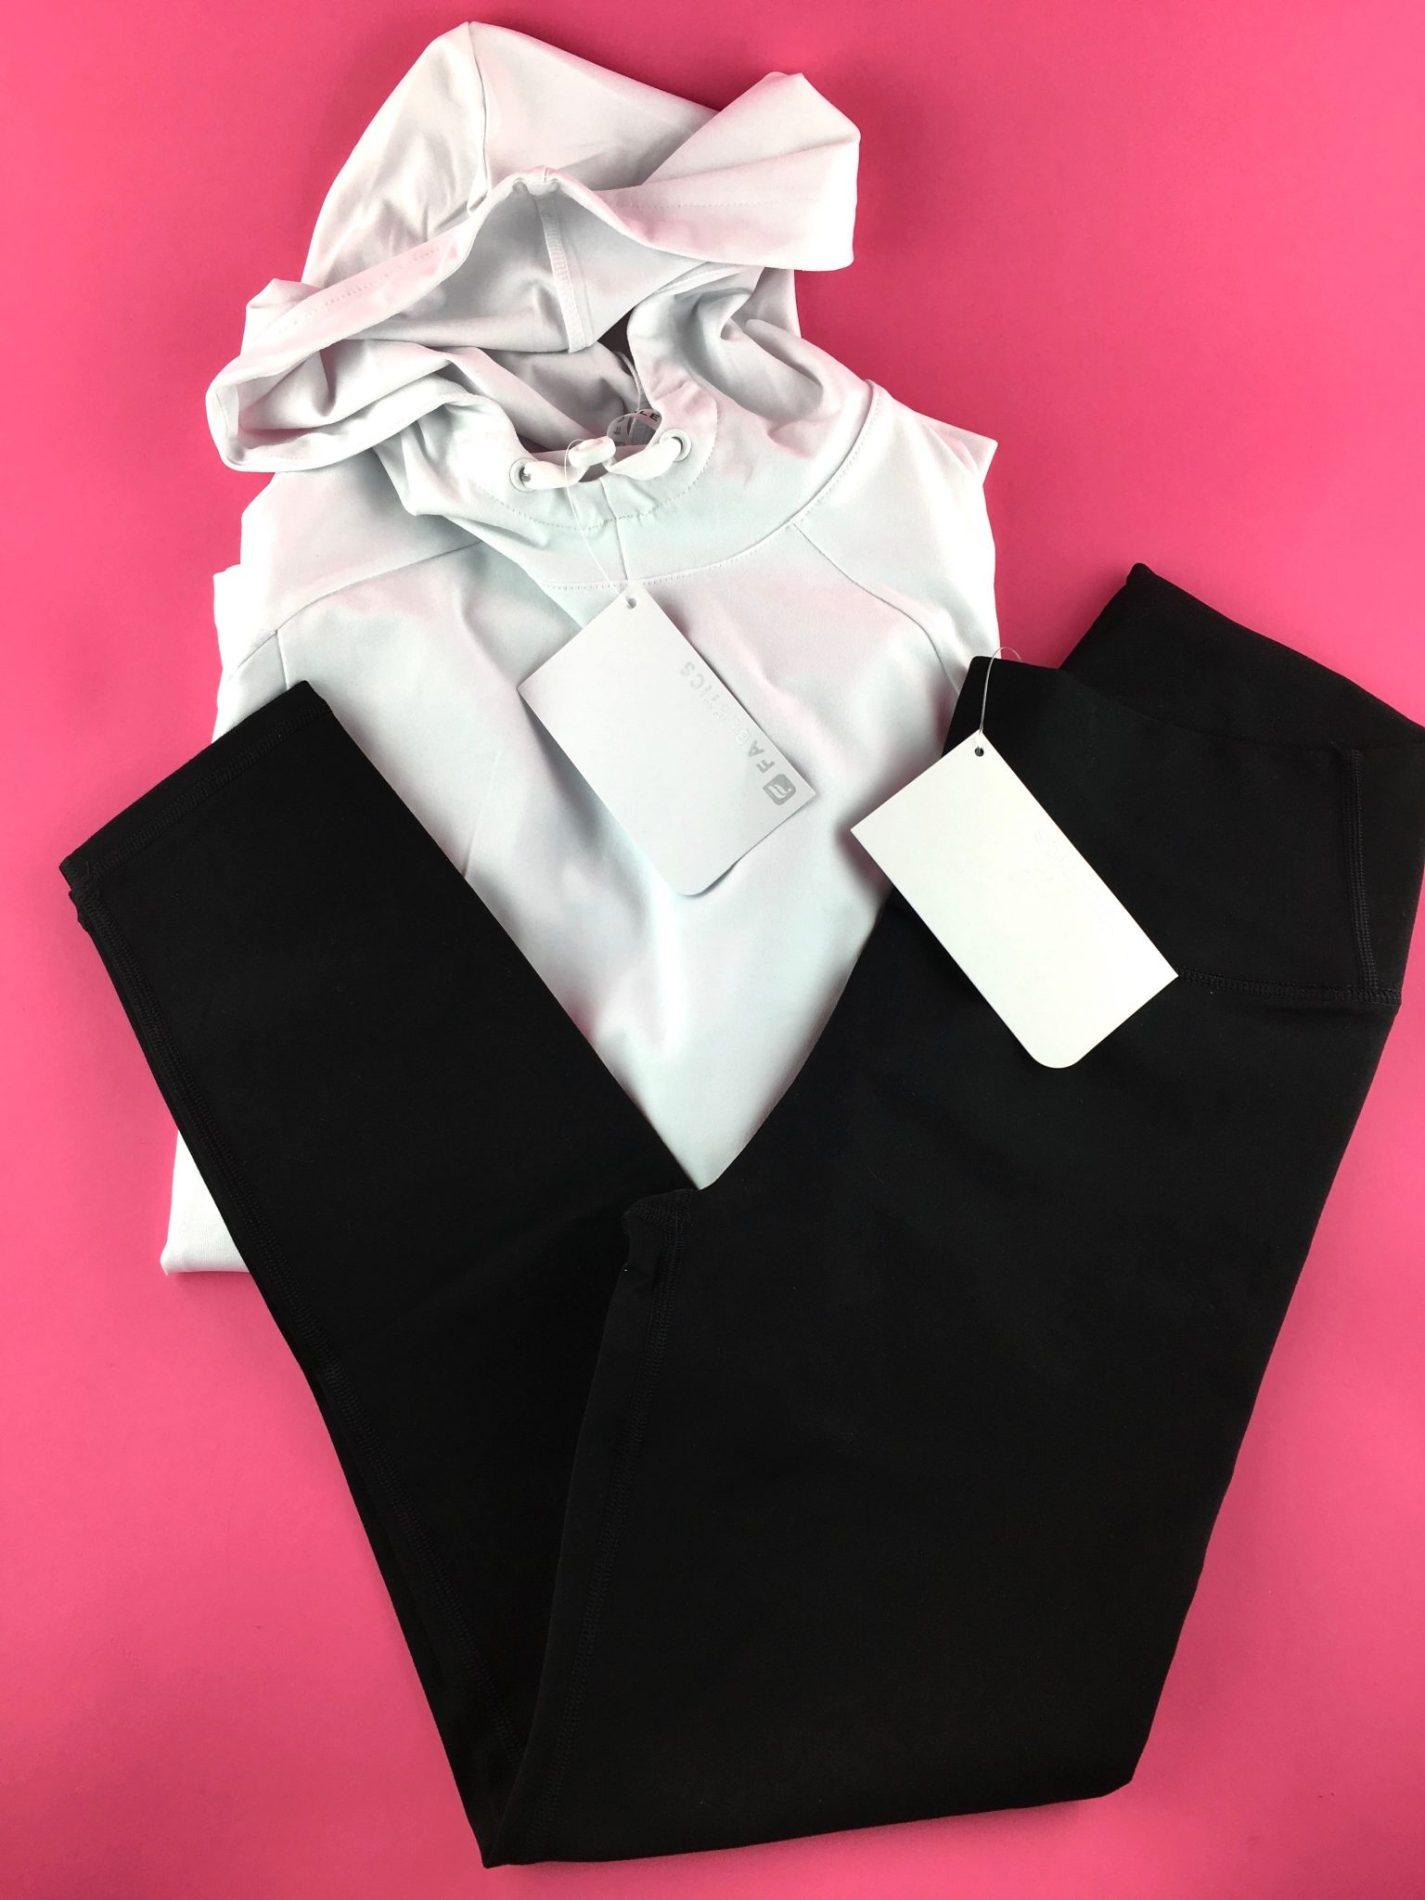 Fabletics Subscription Review – March 2018 + 2 for $24 Leggings Offer